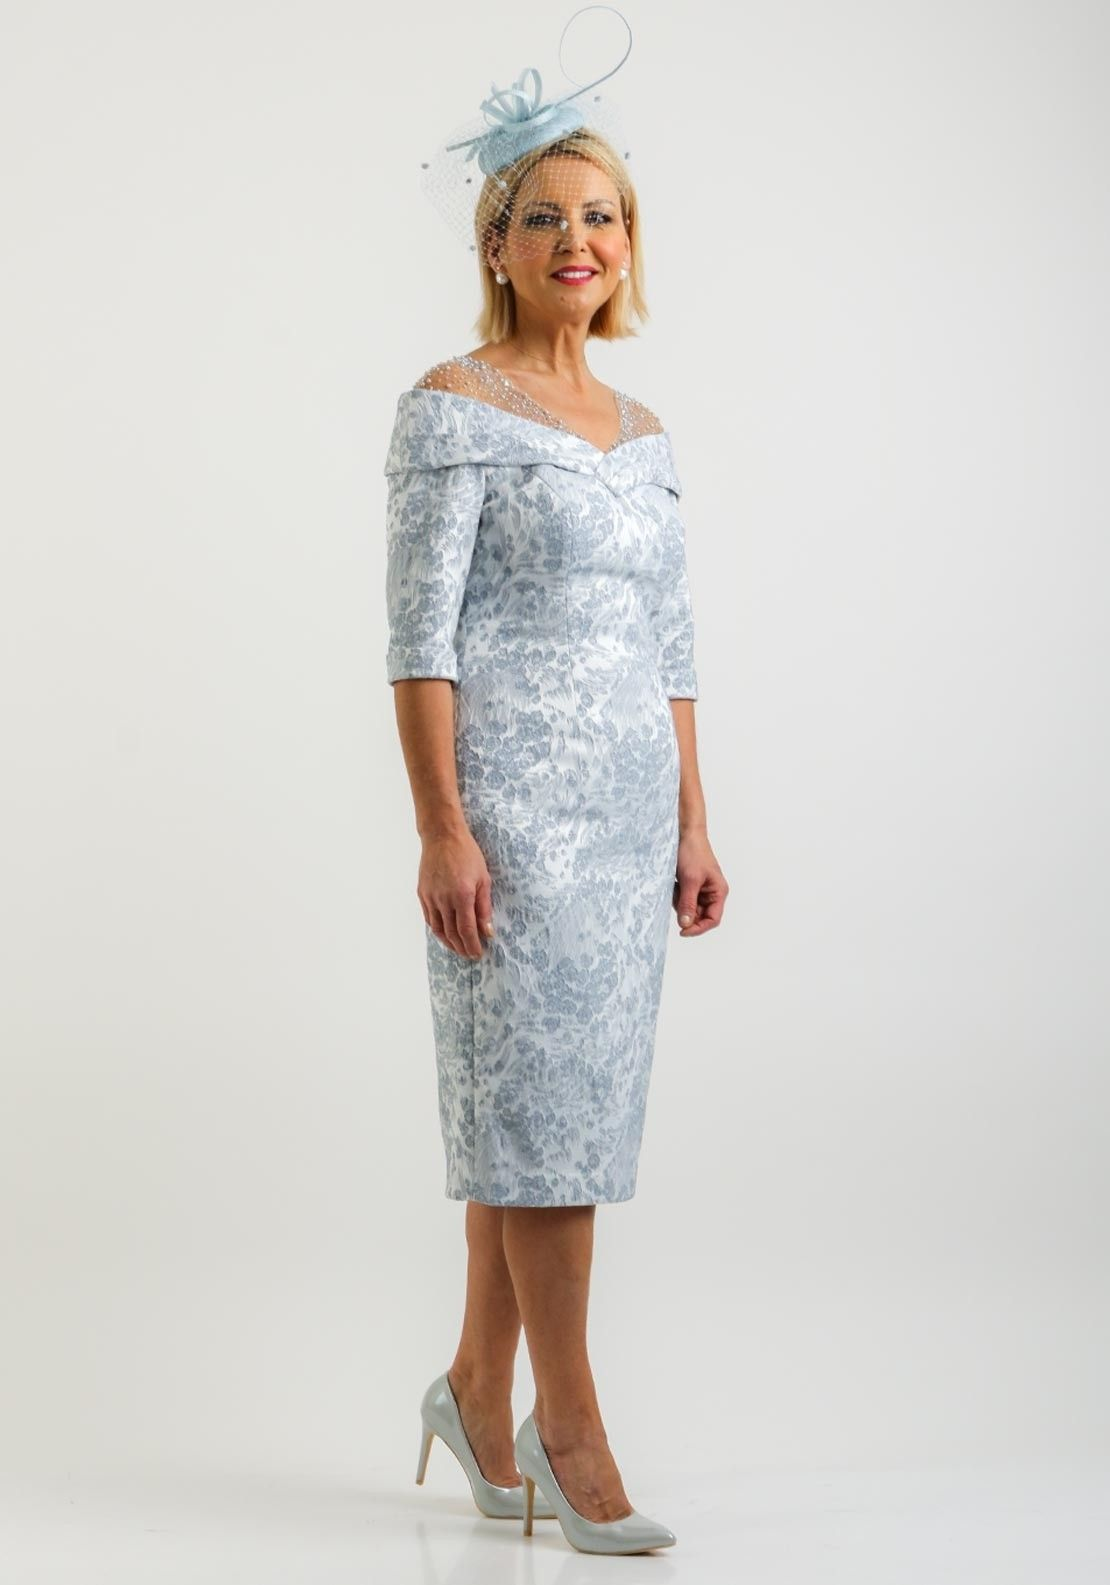 John Charles Embroidered Jacquard Dress Powder Blue Lace Dress With Sleeves Groom Outfit Dresses